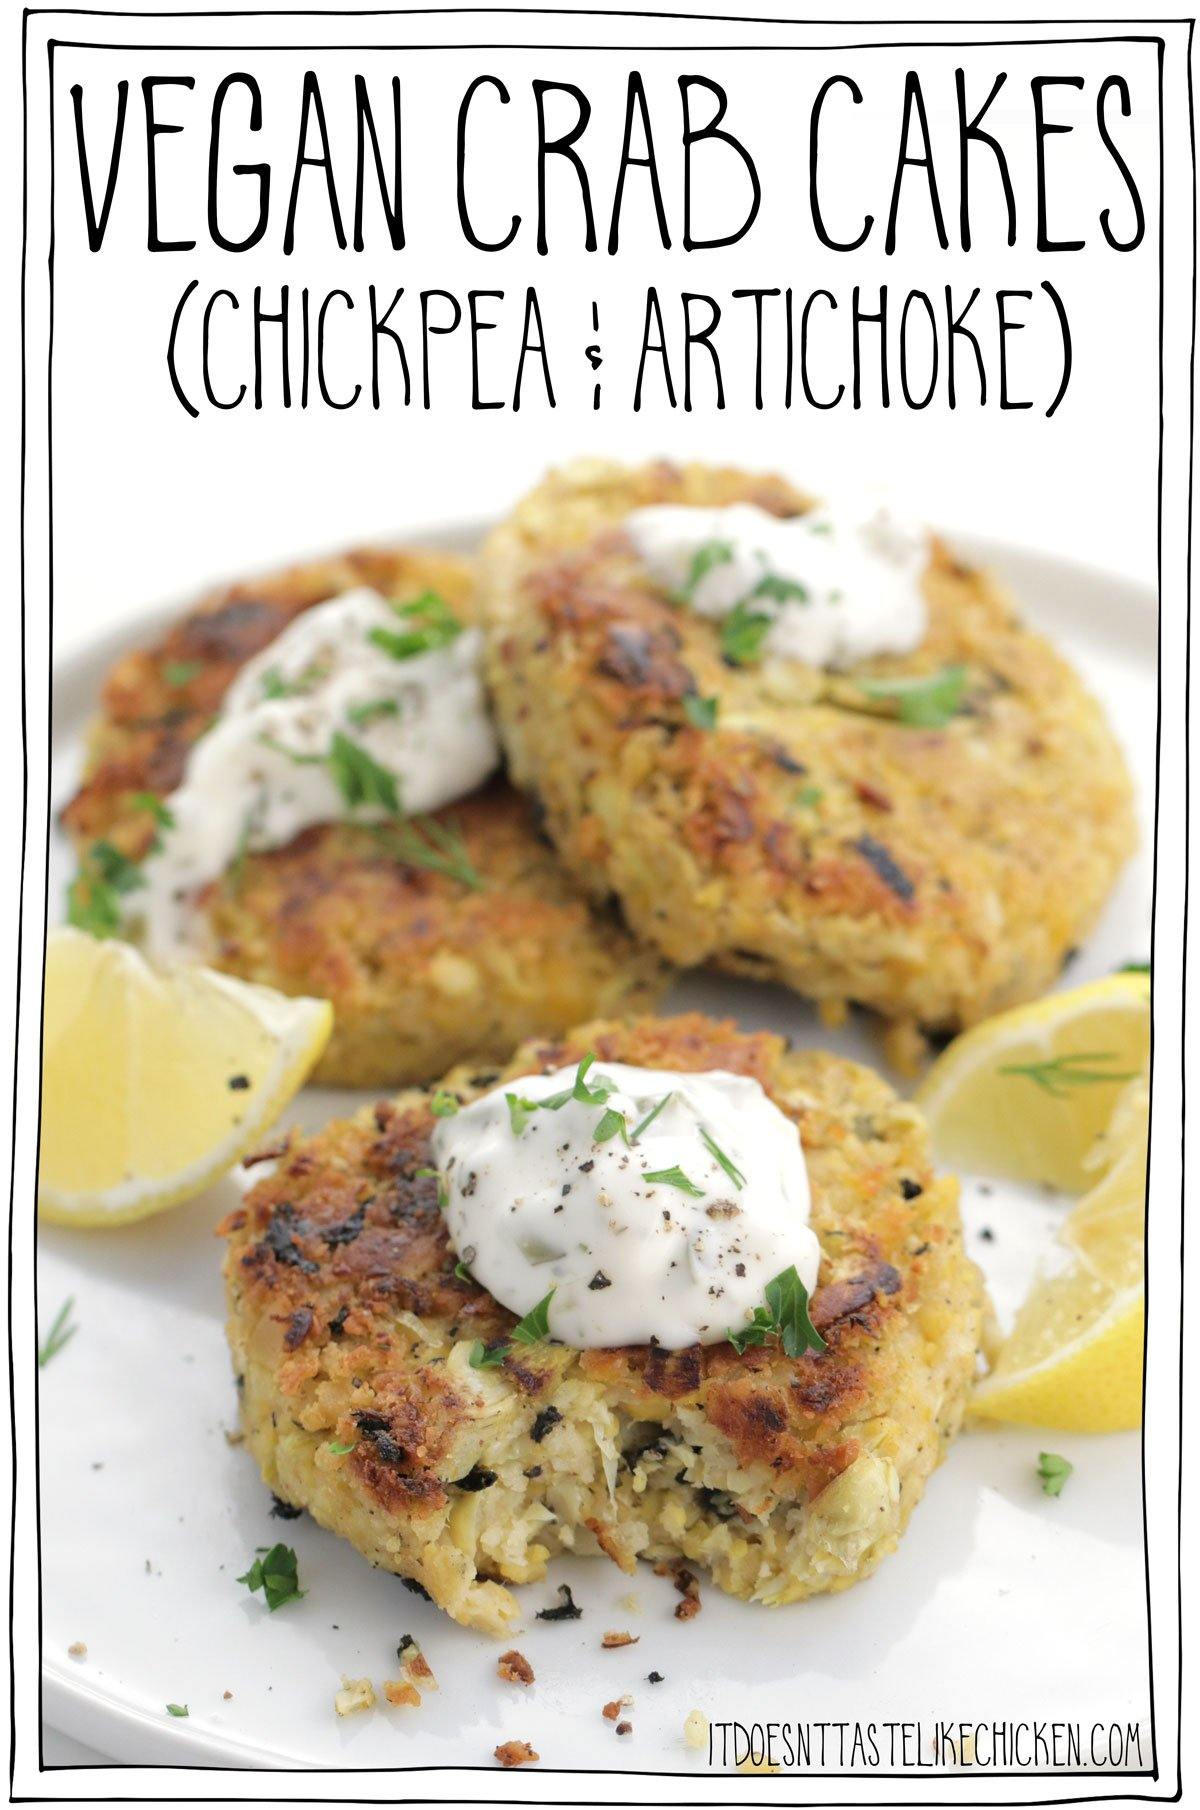 Just 9 ingredients and super-easy to make. These Easy Vegan Crab Cakes can be made in a skillet or a pan but I have also included air-fryer instructions as well as baked options! Oh, and they can be made oil-free! Flaky, tender, and creamy, these Easy Vegan Crab Cakes are next-level good! #itdoesnttastelikechicken #vegancrabcakes